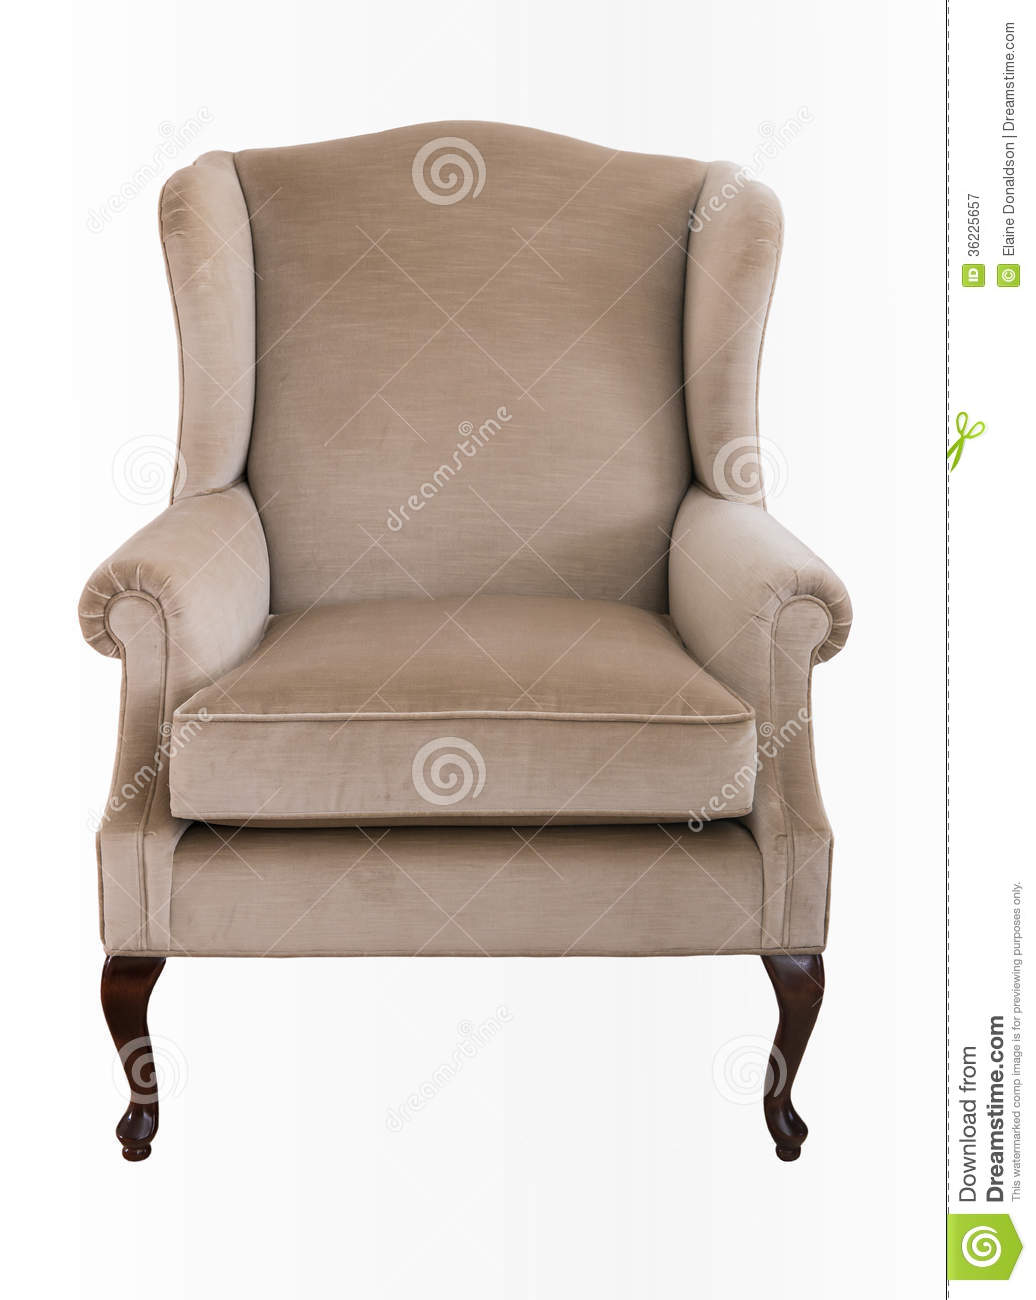 Armchair Royalty Free Stock Photography - Image: 36225657